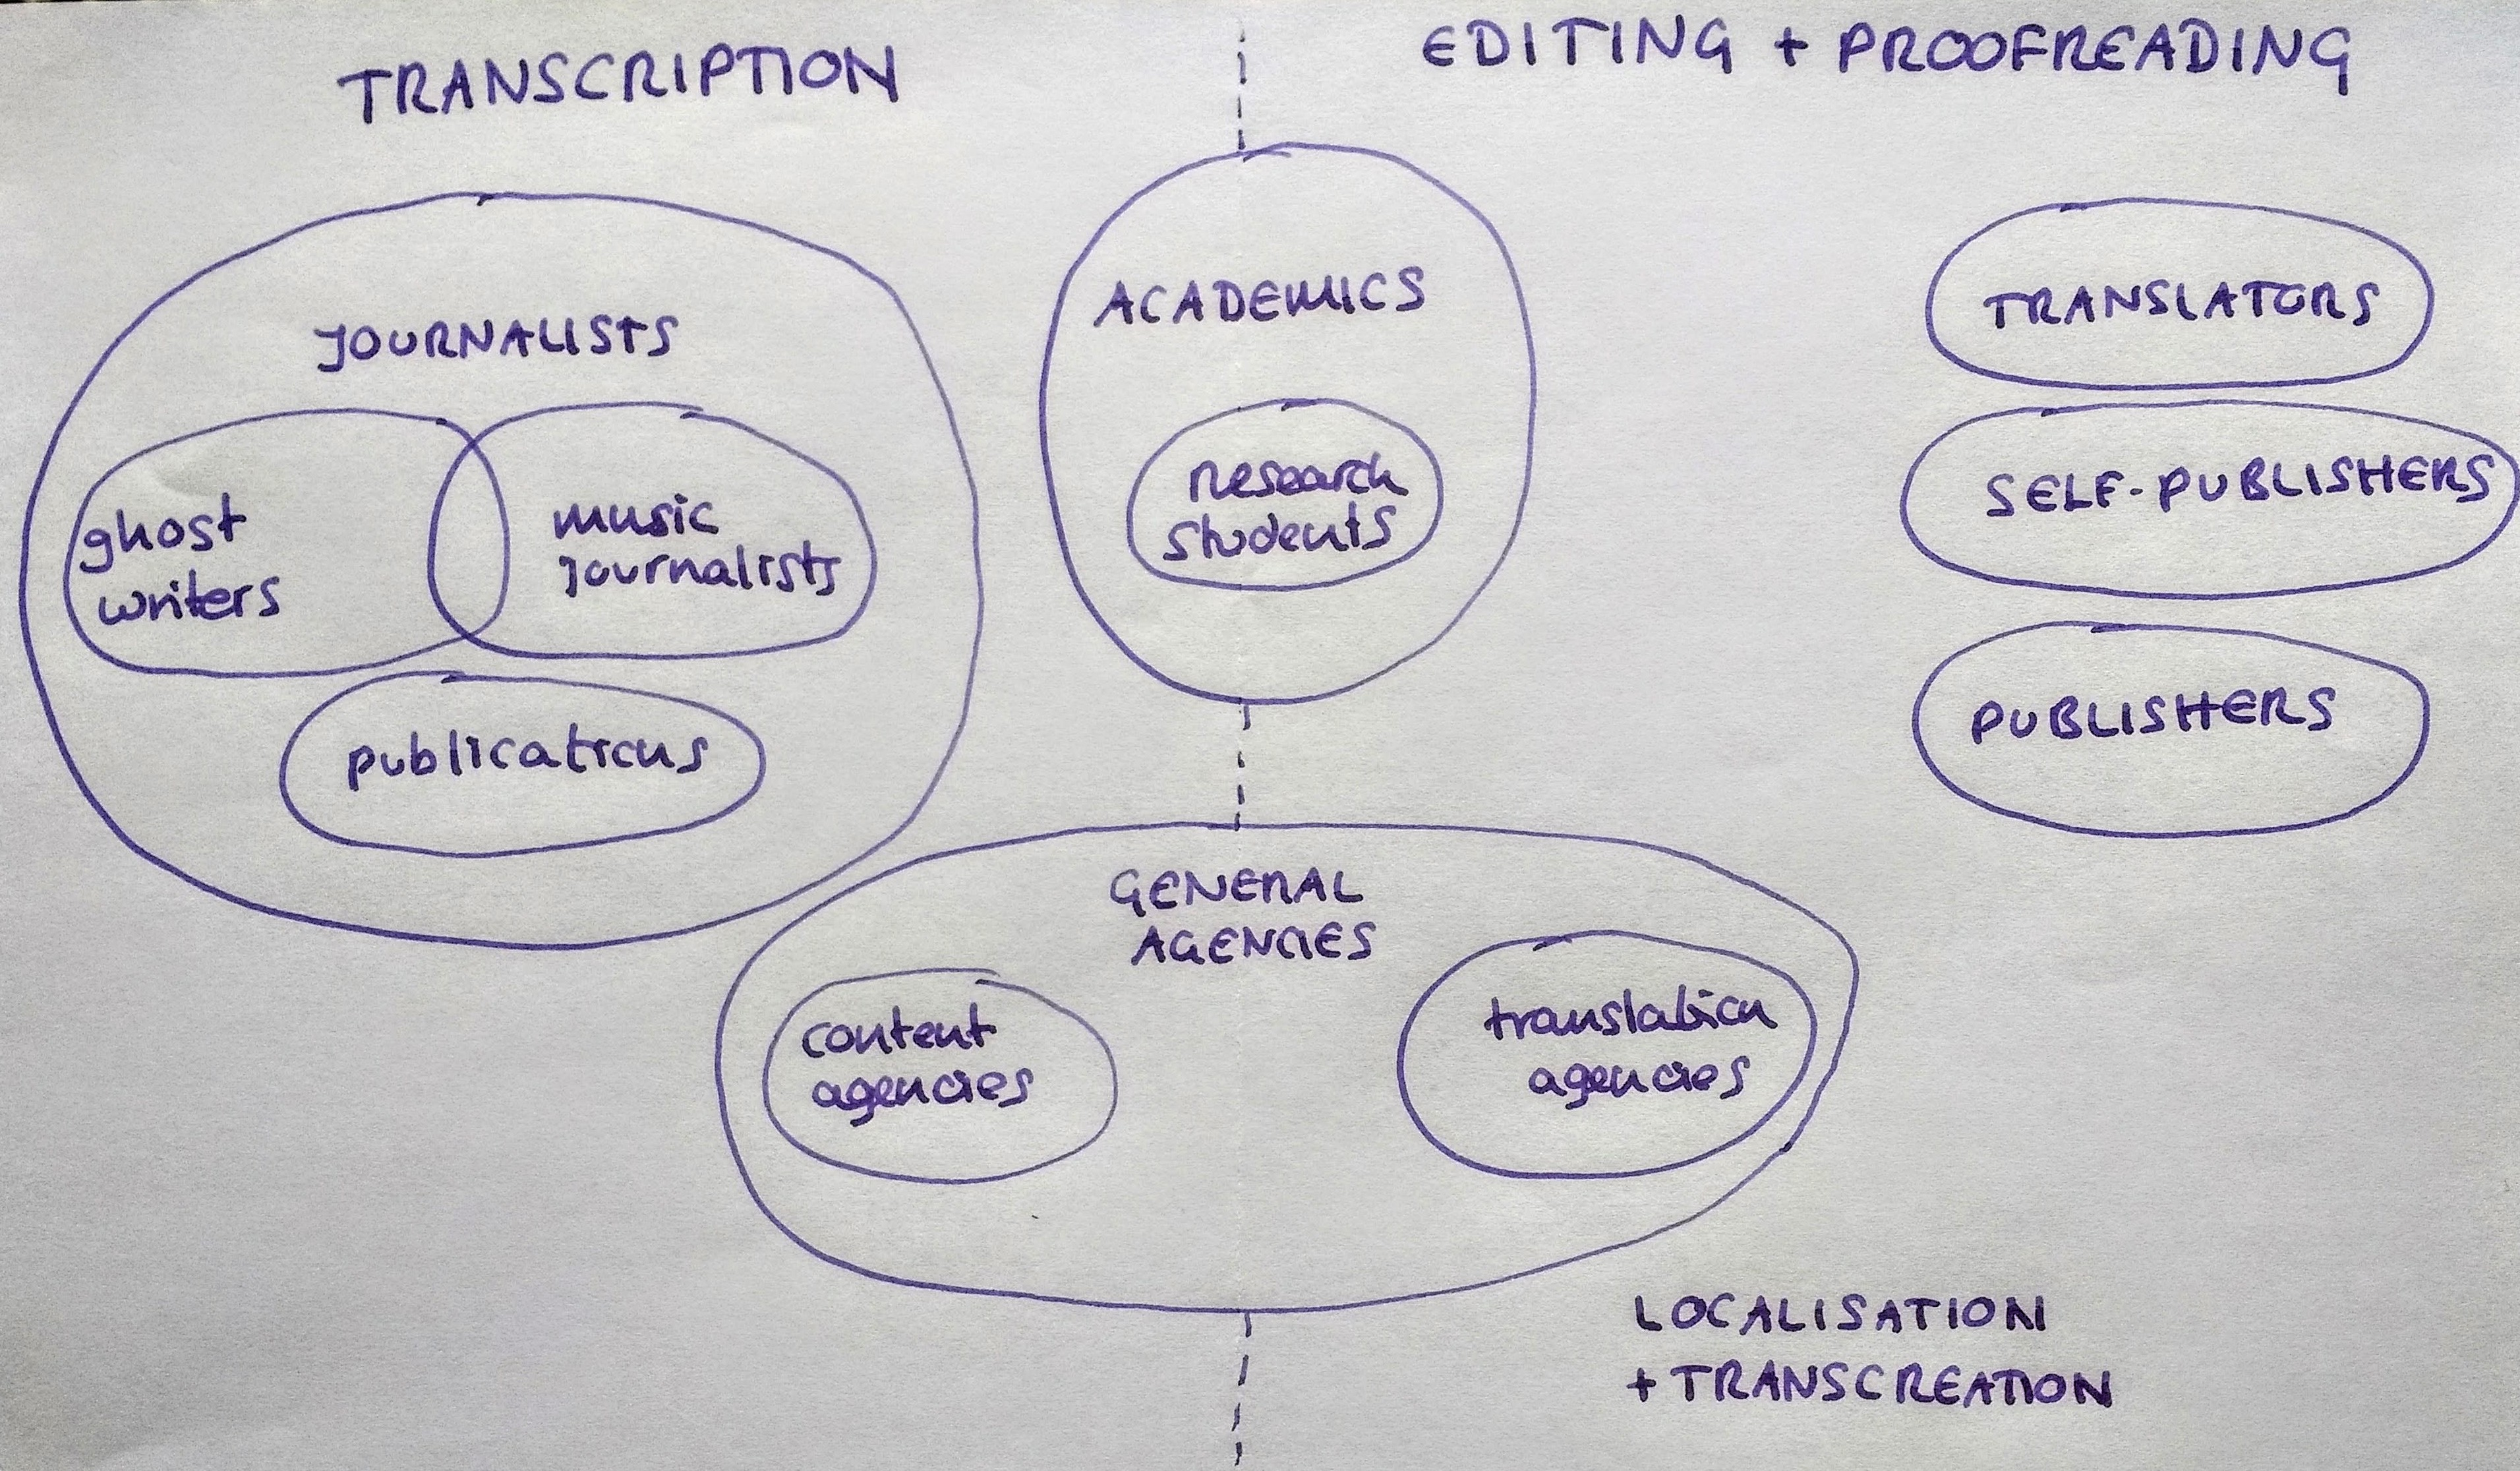 Copyediting libroediting proofreading editing transcription libroediting services venn diagram fandeluxe Images